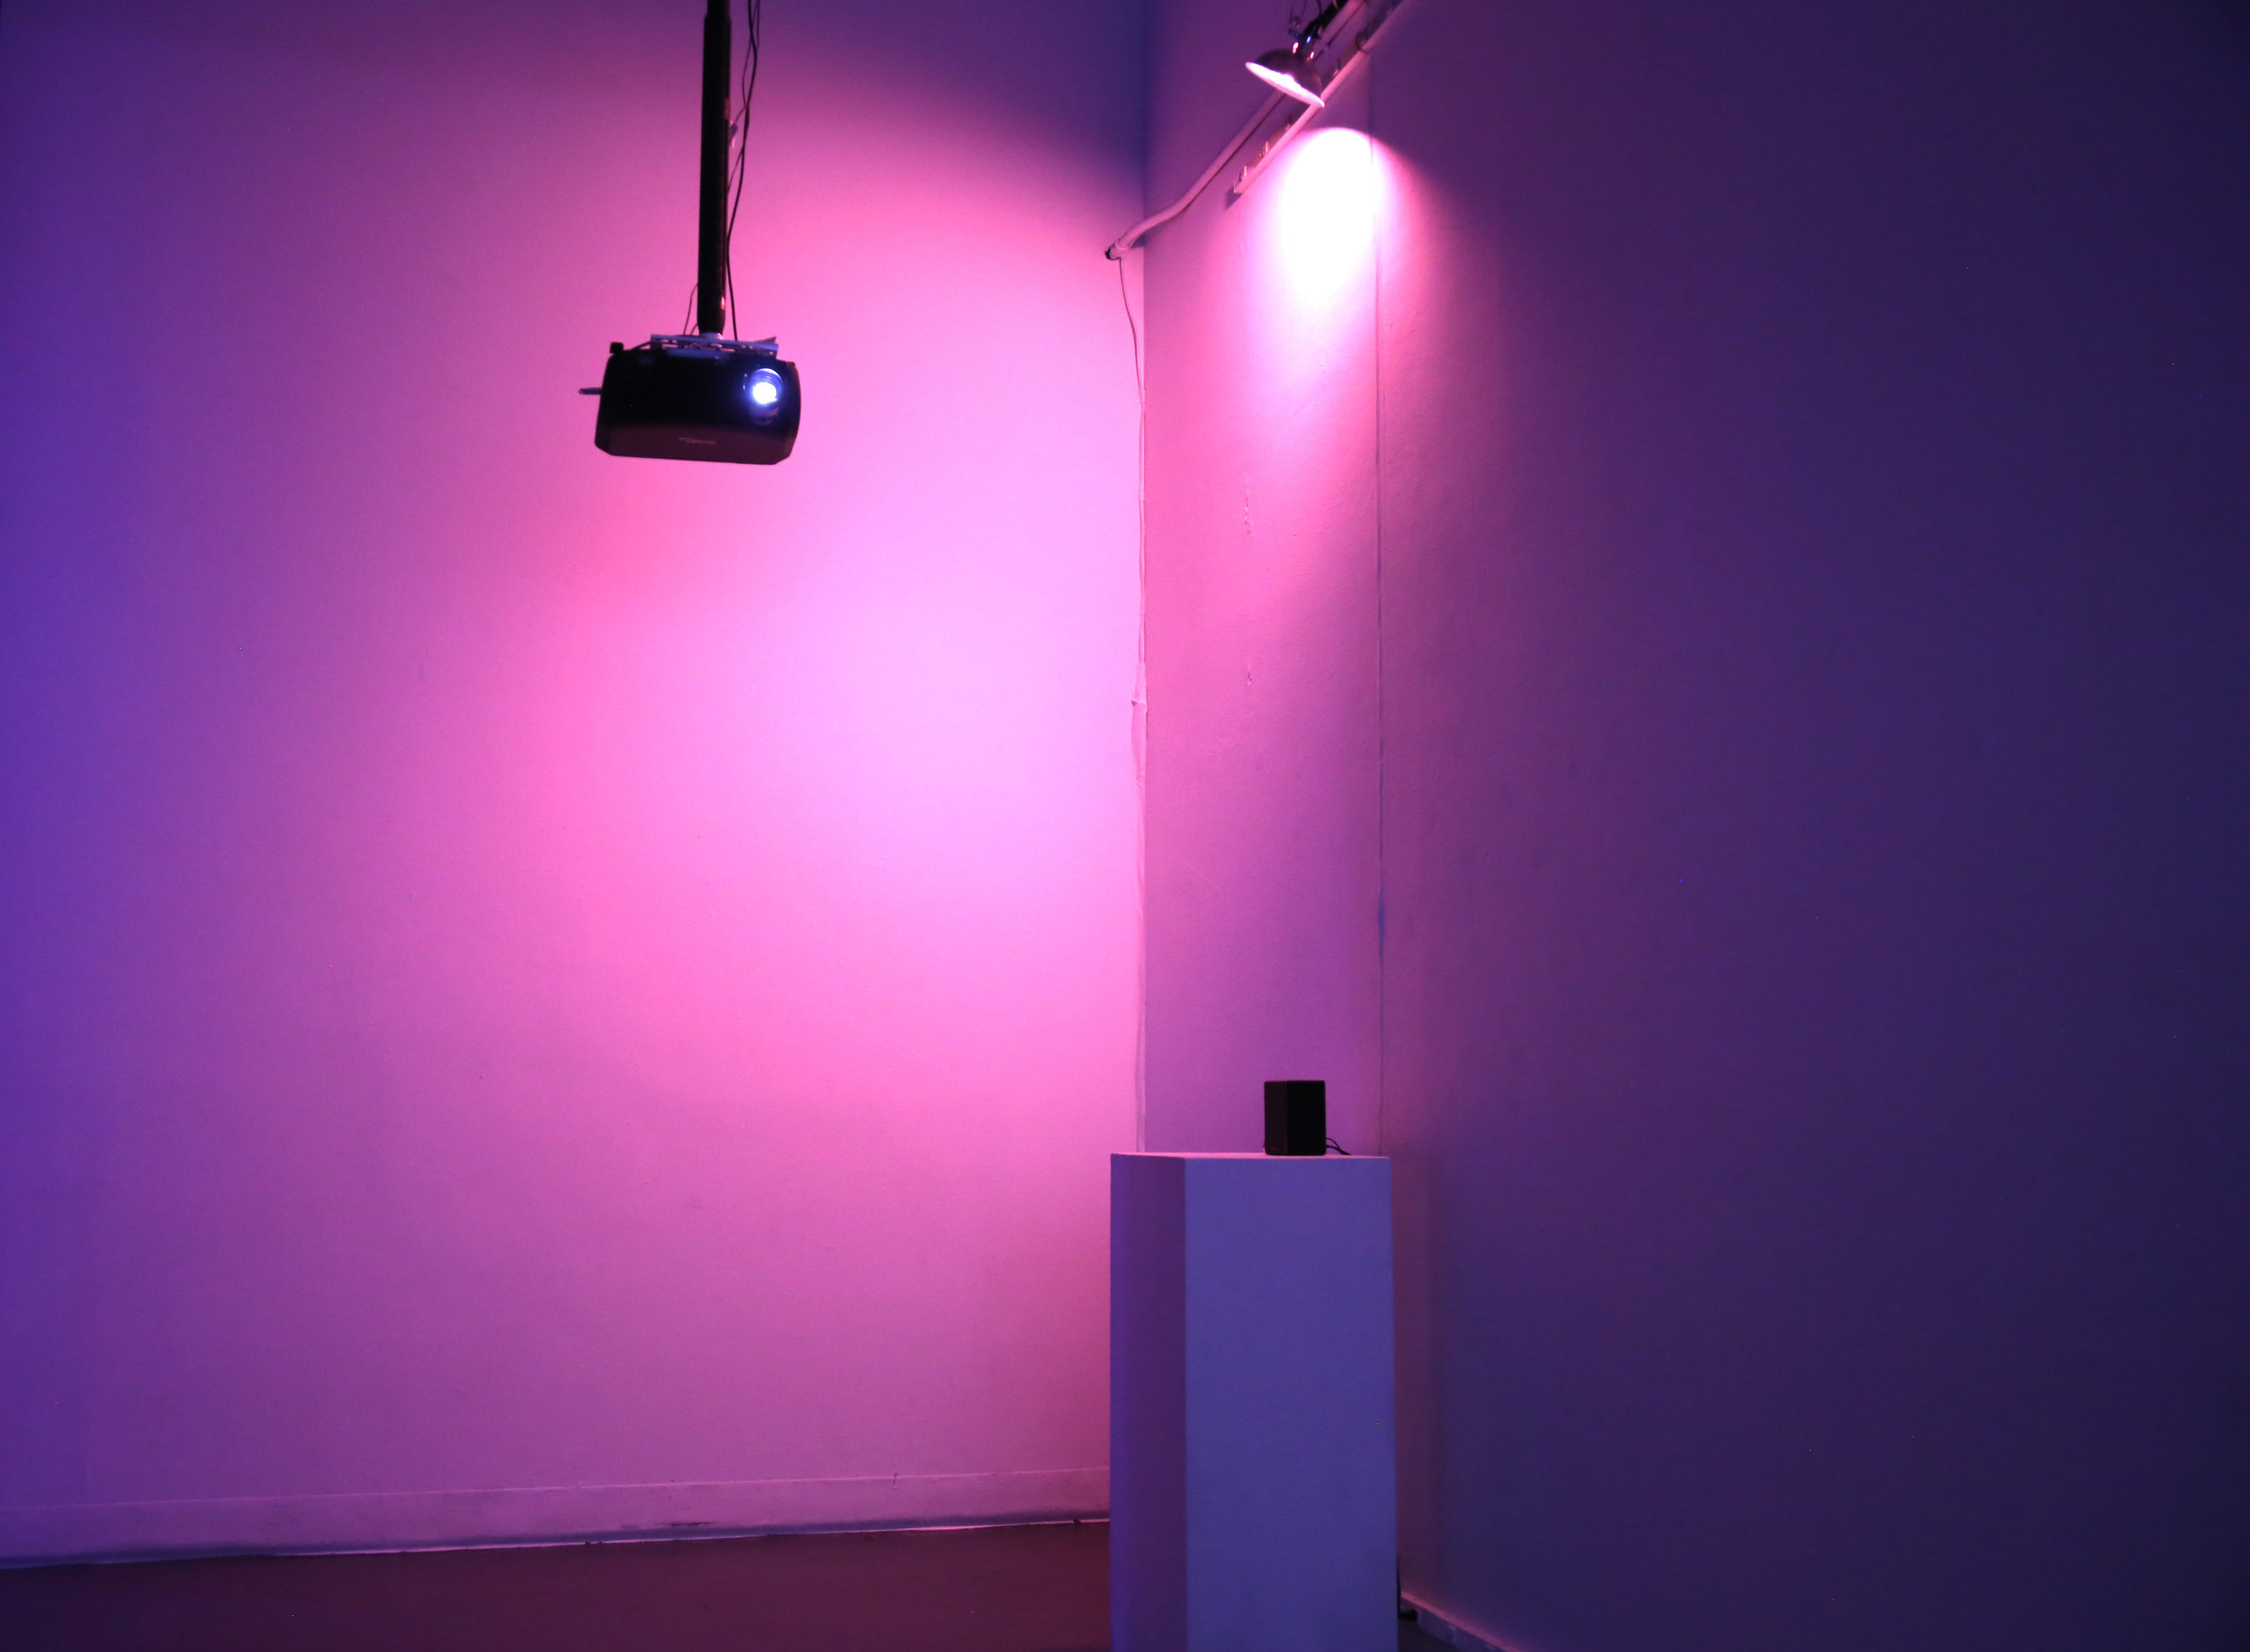 Installation View,Qualai, 2017  Video Projector,Sound Speaker, and Perfume Dispenser